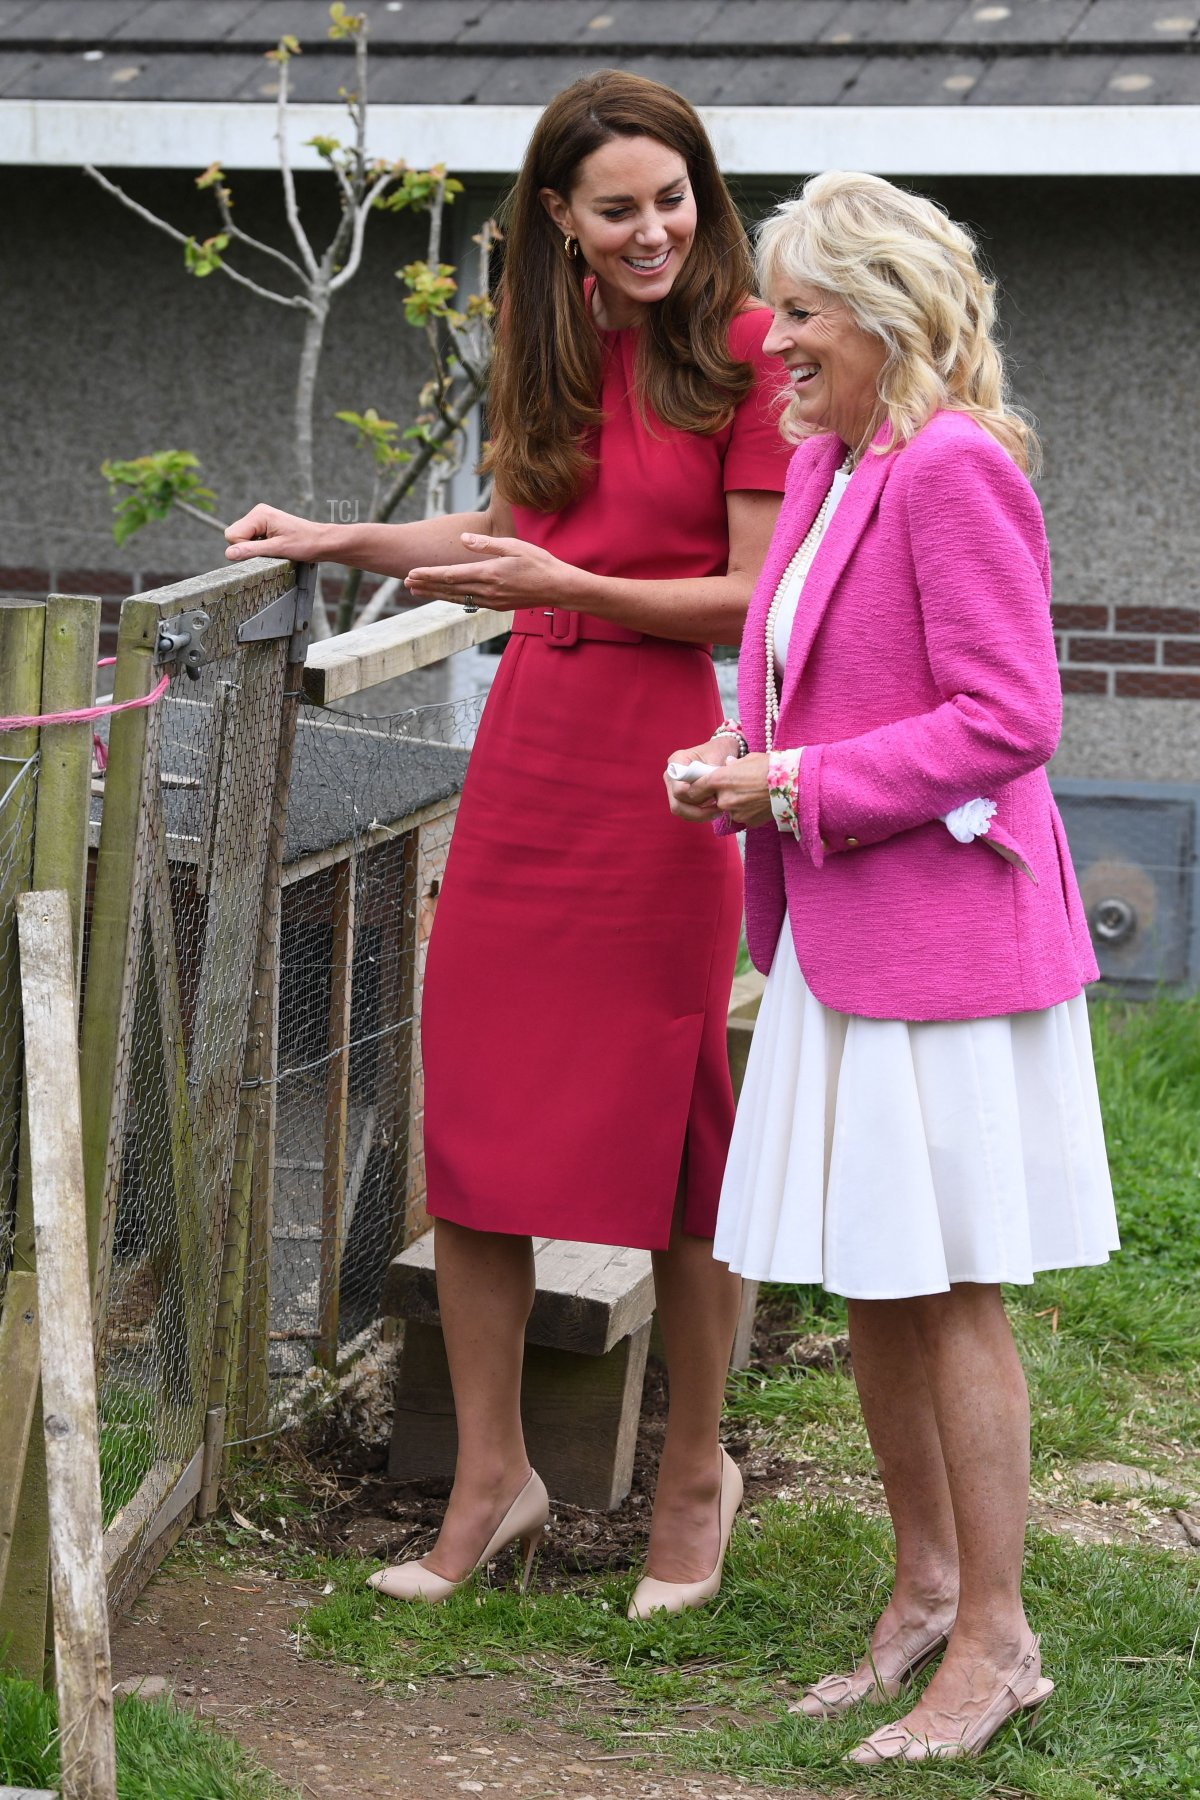 Britain's Catherine, Duchess of Cambridge (L) and US First Lady Jill Biden visit Connor Downs Academy in Hayle, Cornwall on the sidelines of the G7 summit on June 11, 2021